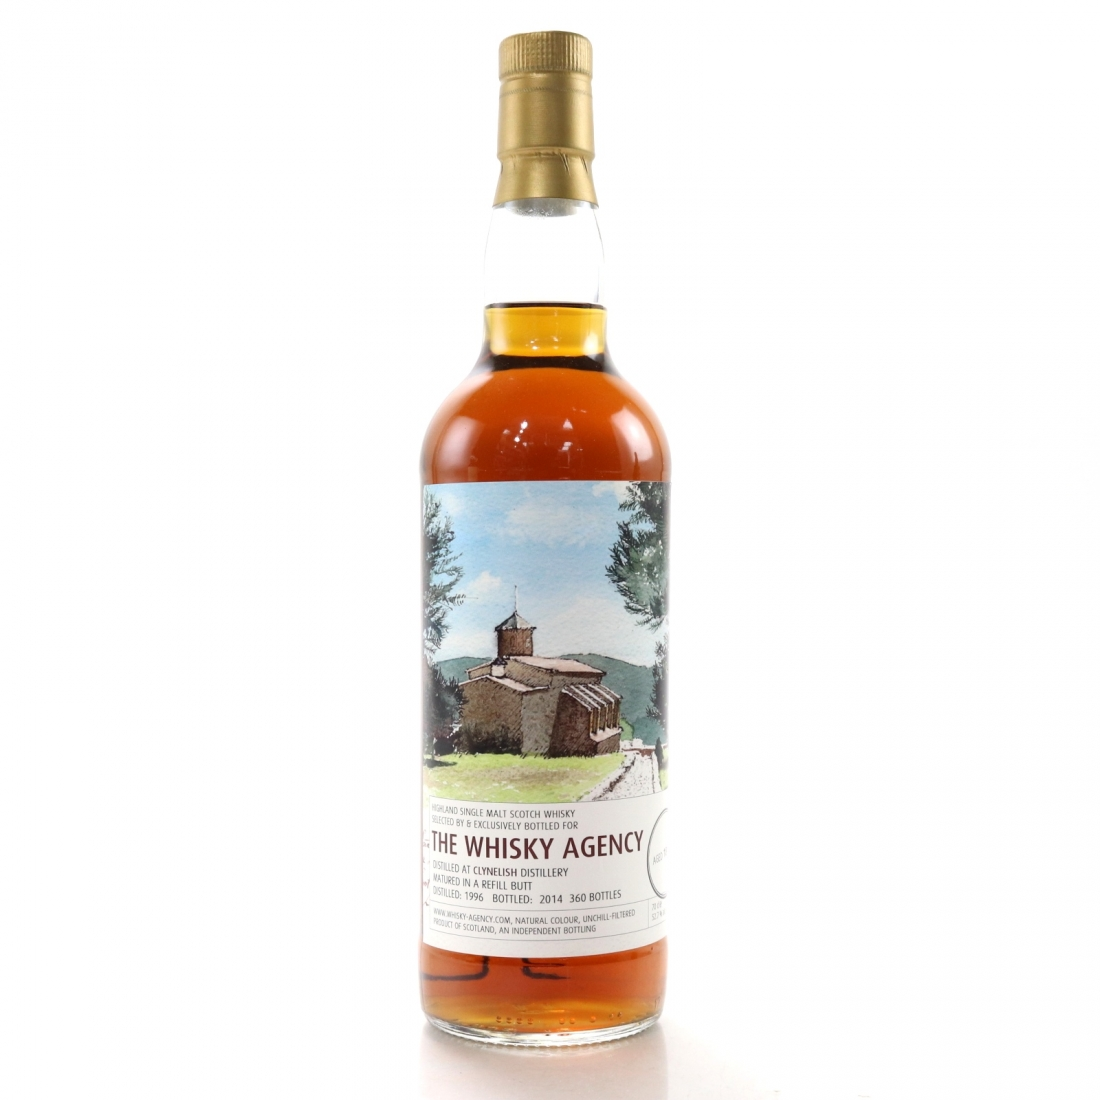 Clynelish 1996 Whisky Agency 18 Year Old